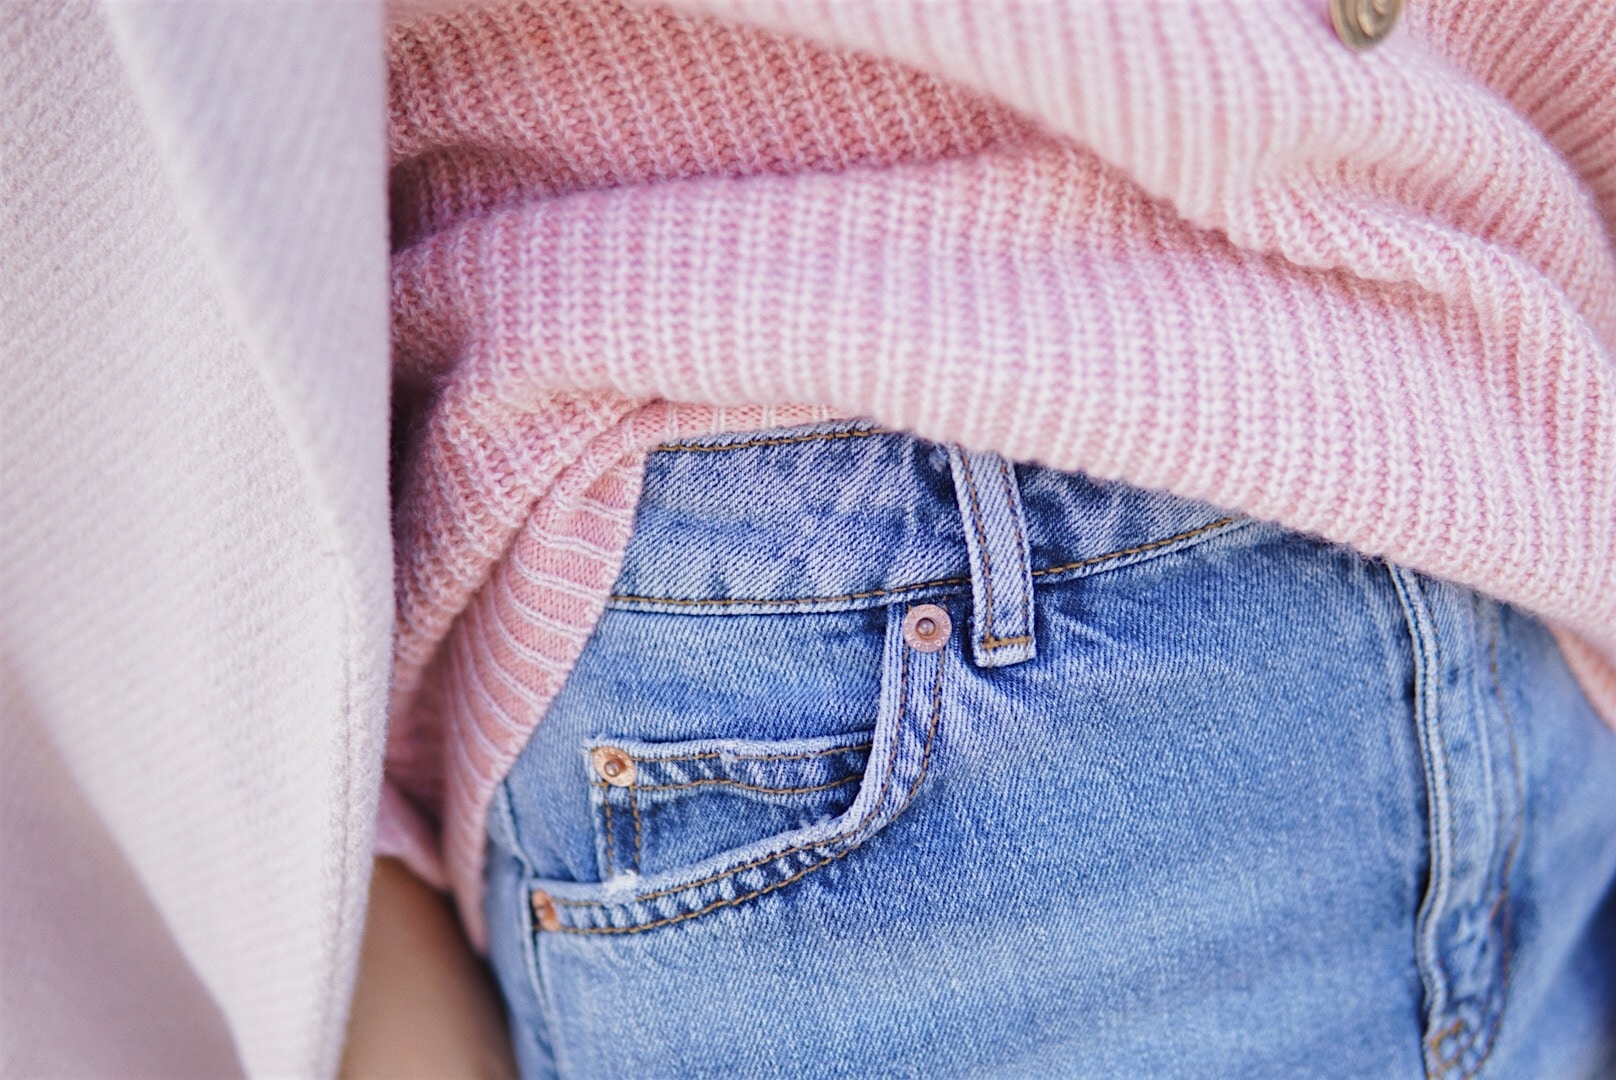 Top Shop Denim Skirt and Pink Sweater - Valentine's Day Style by Her Fashioned Life